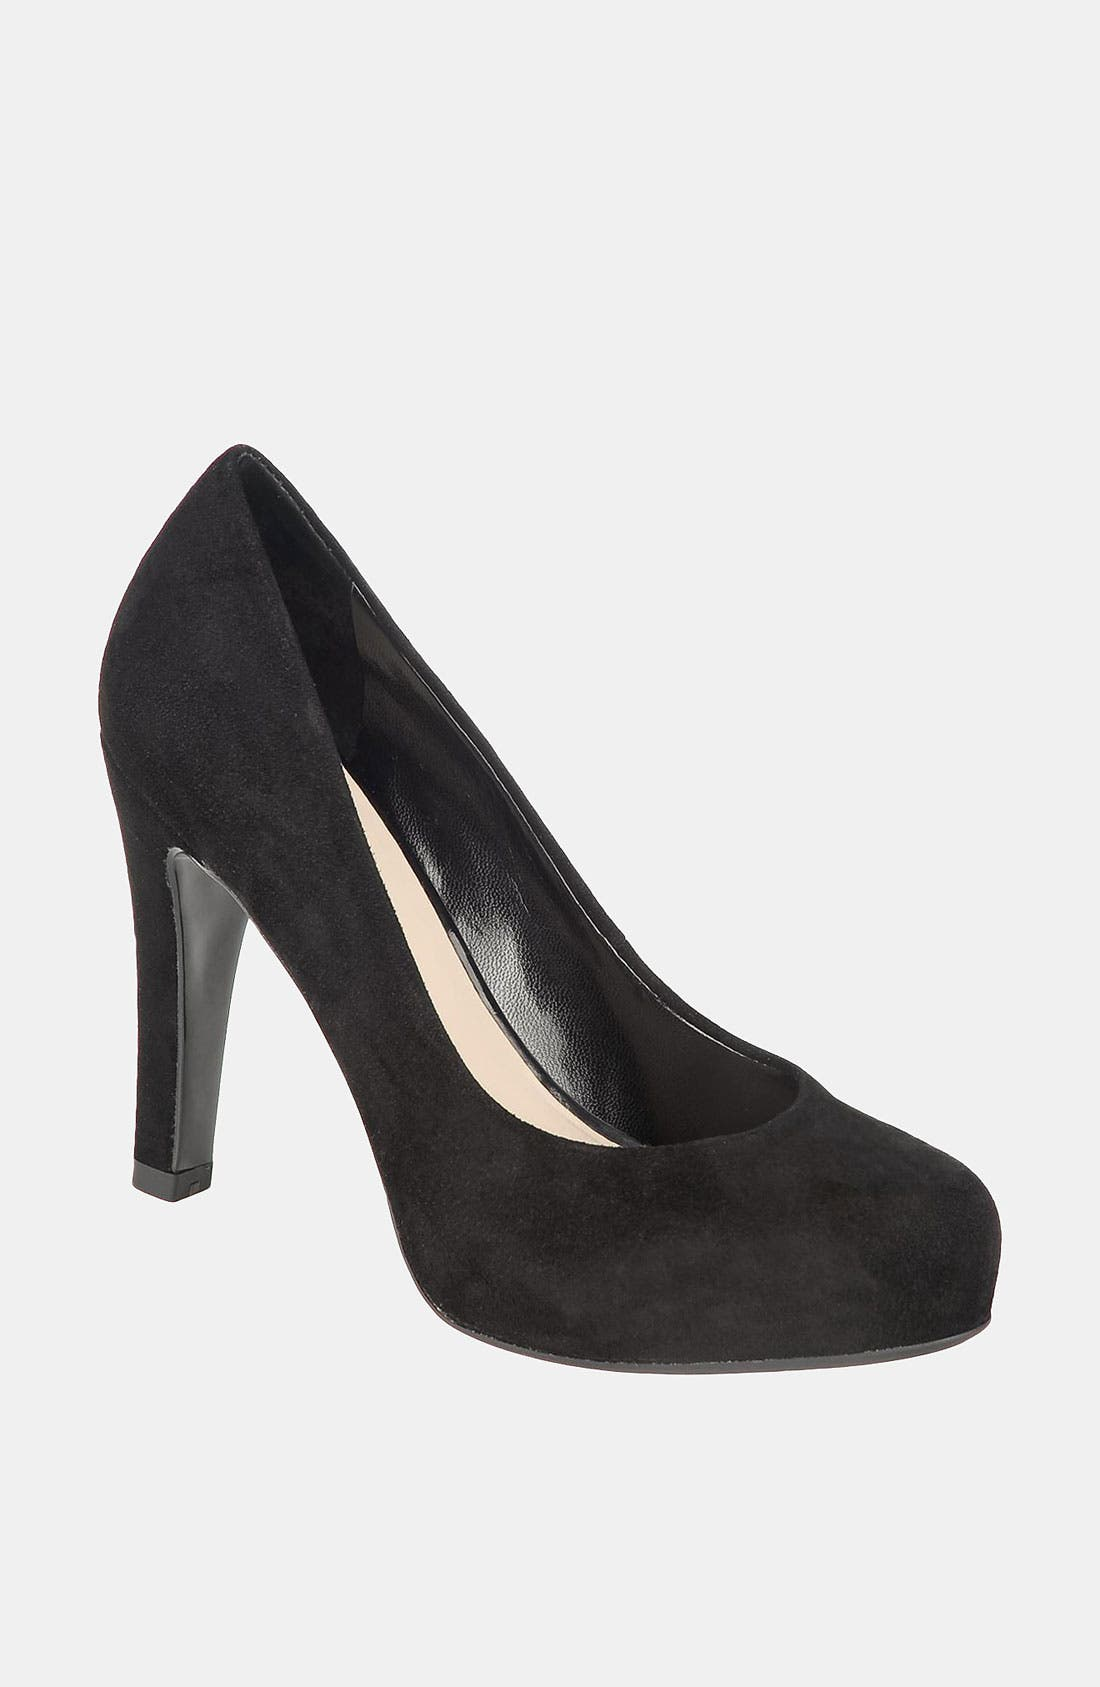 Alternate Image 1 Selected - Franco Sarto 'Cicero' Pump